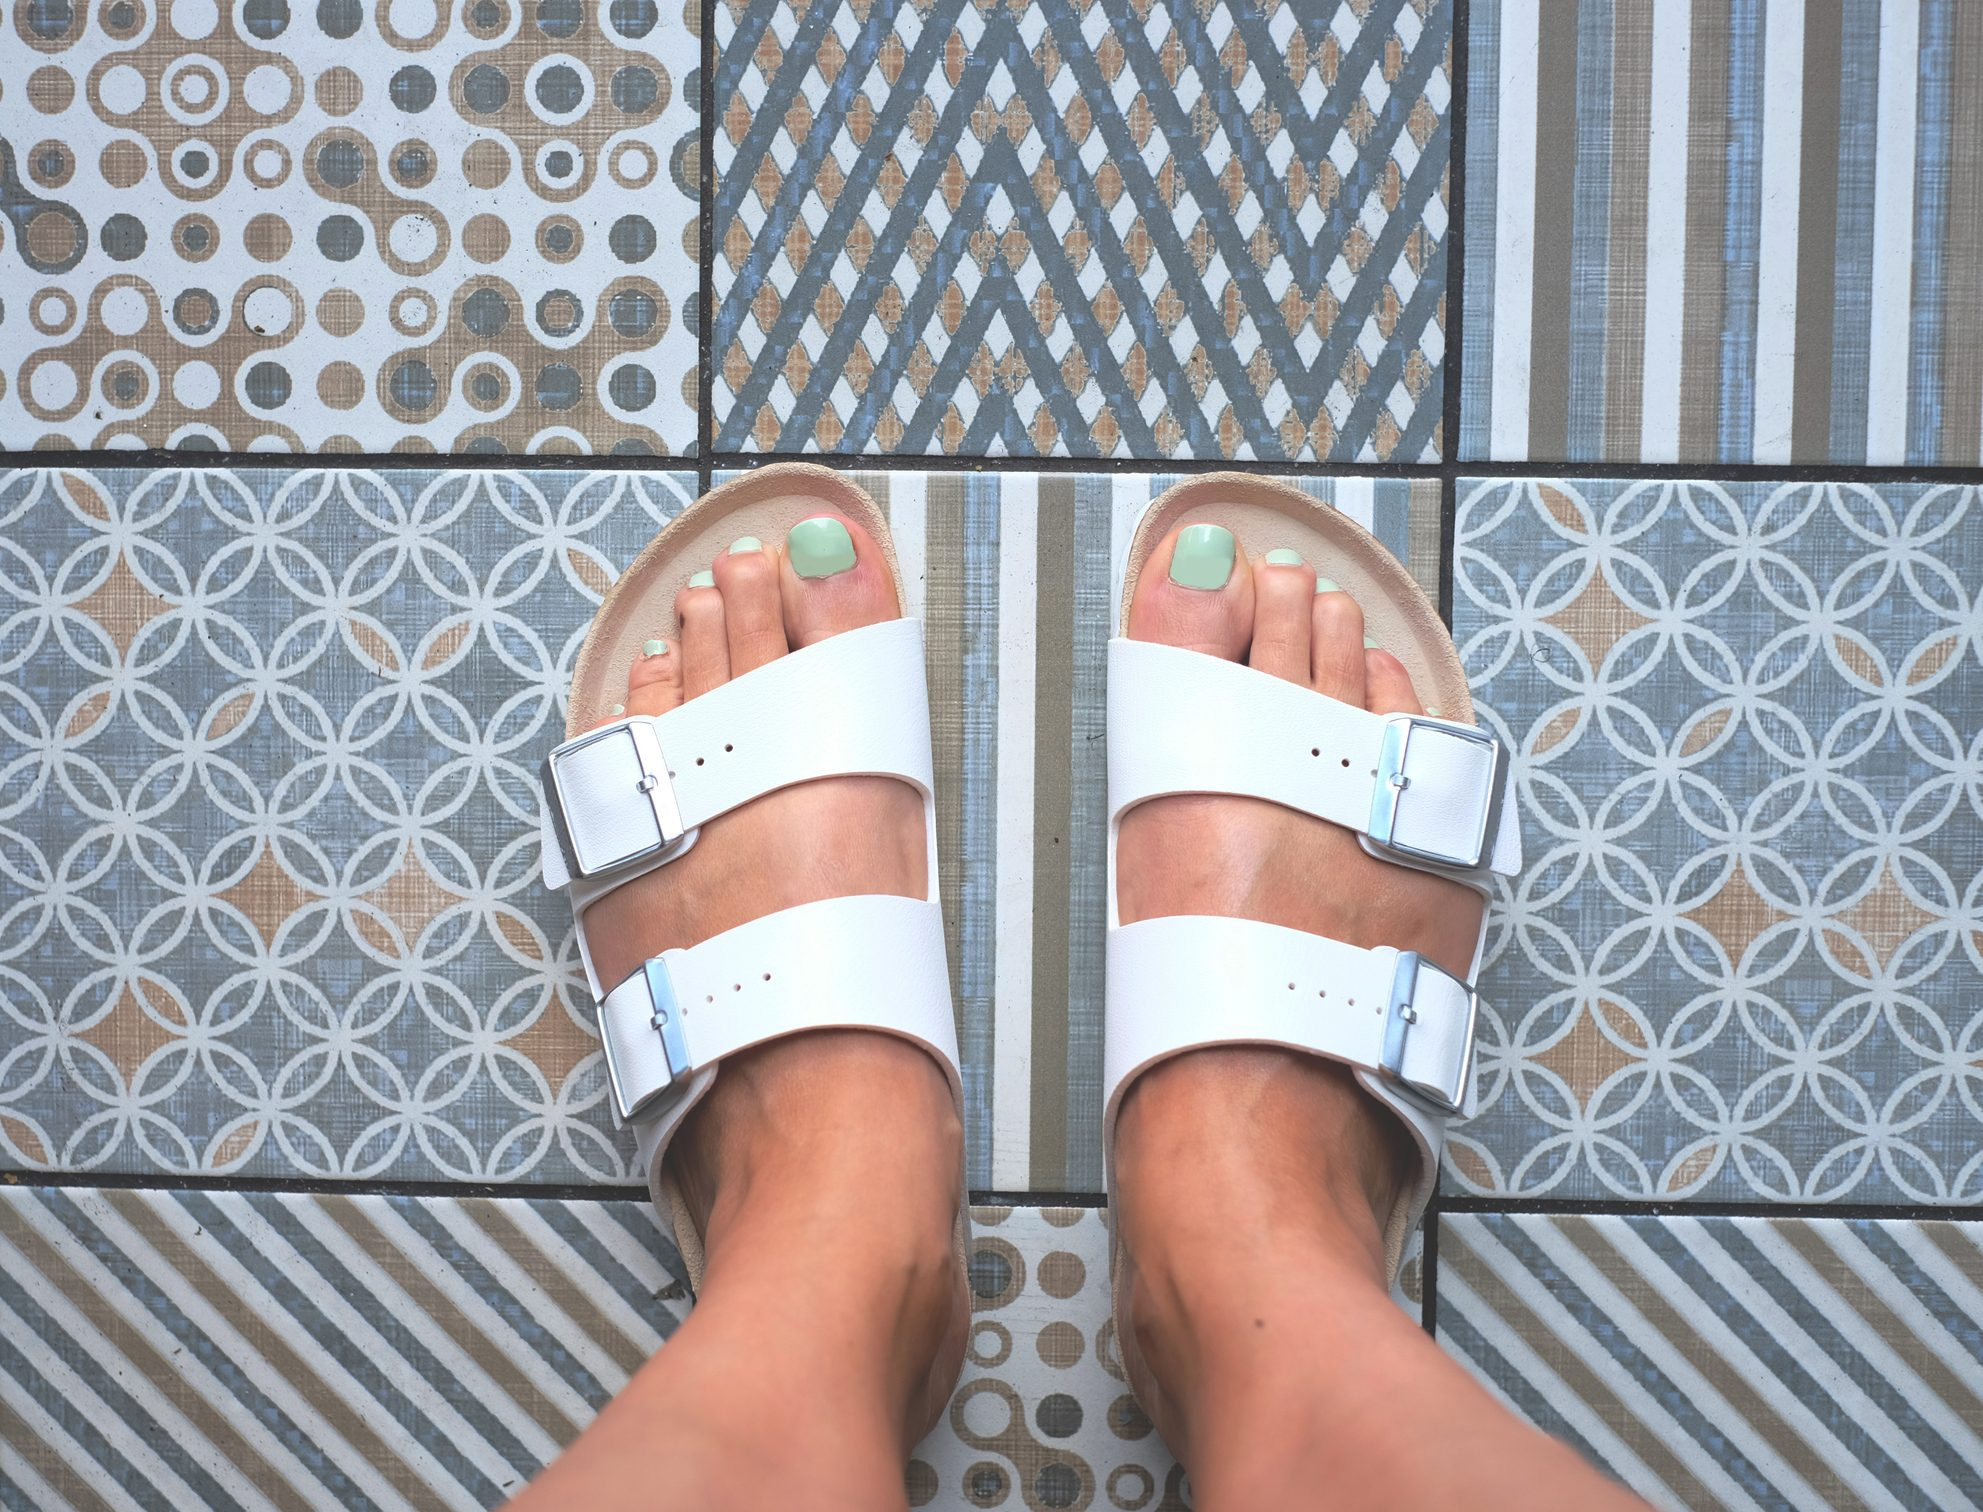 Woman feet in a sandal with patterned background